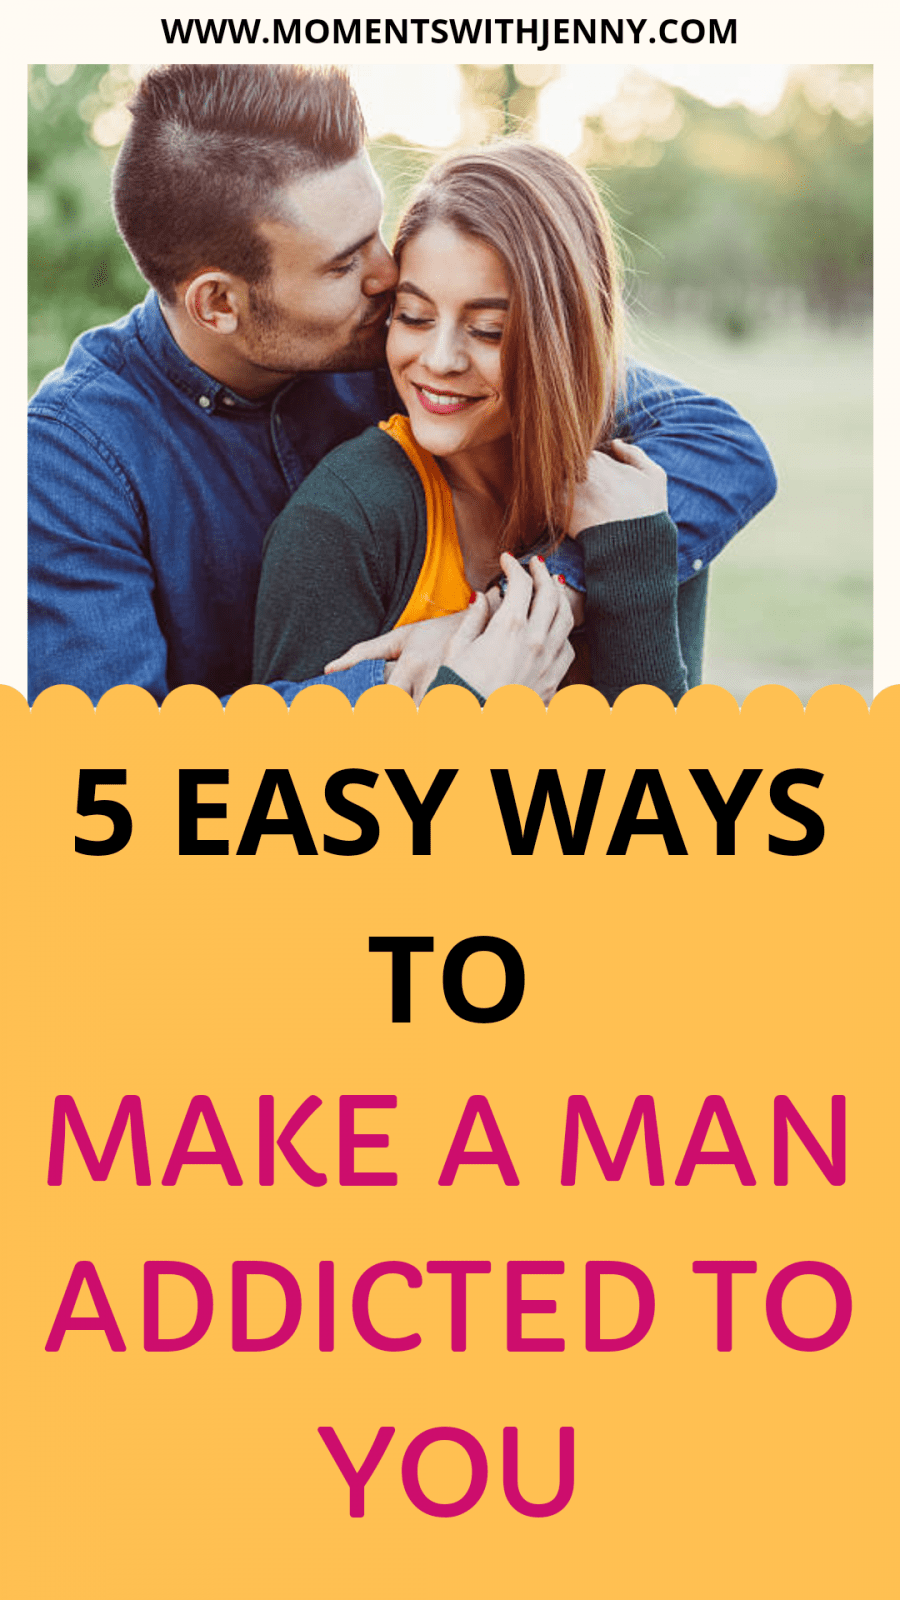 5 Easy Ways to Make a Man Addicted to You